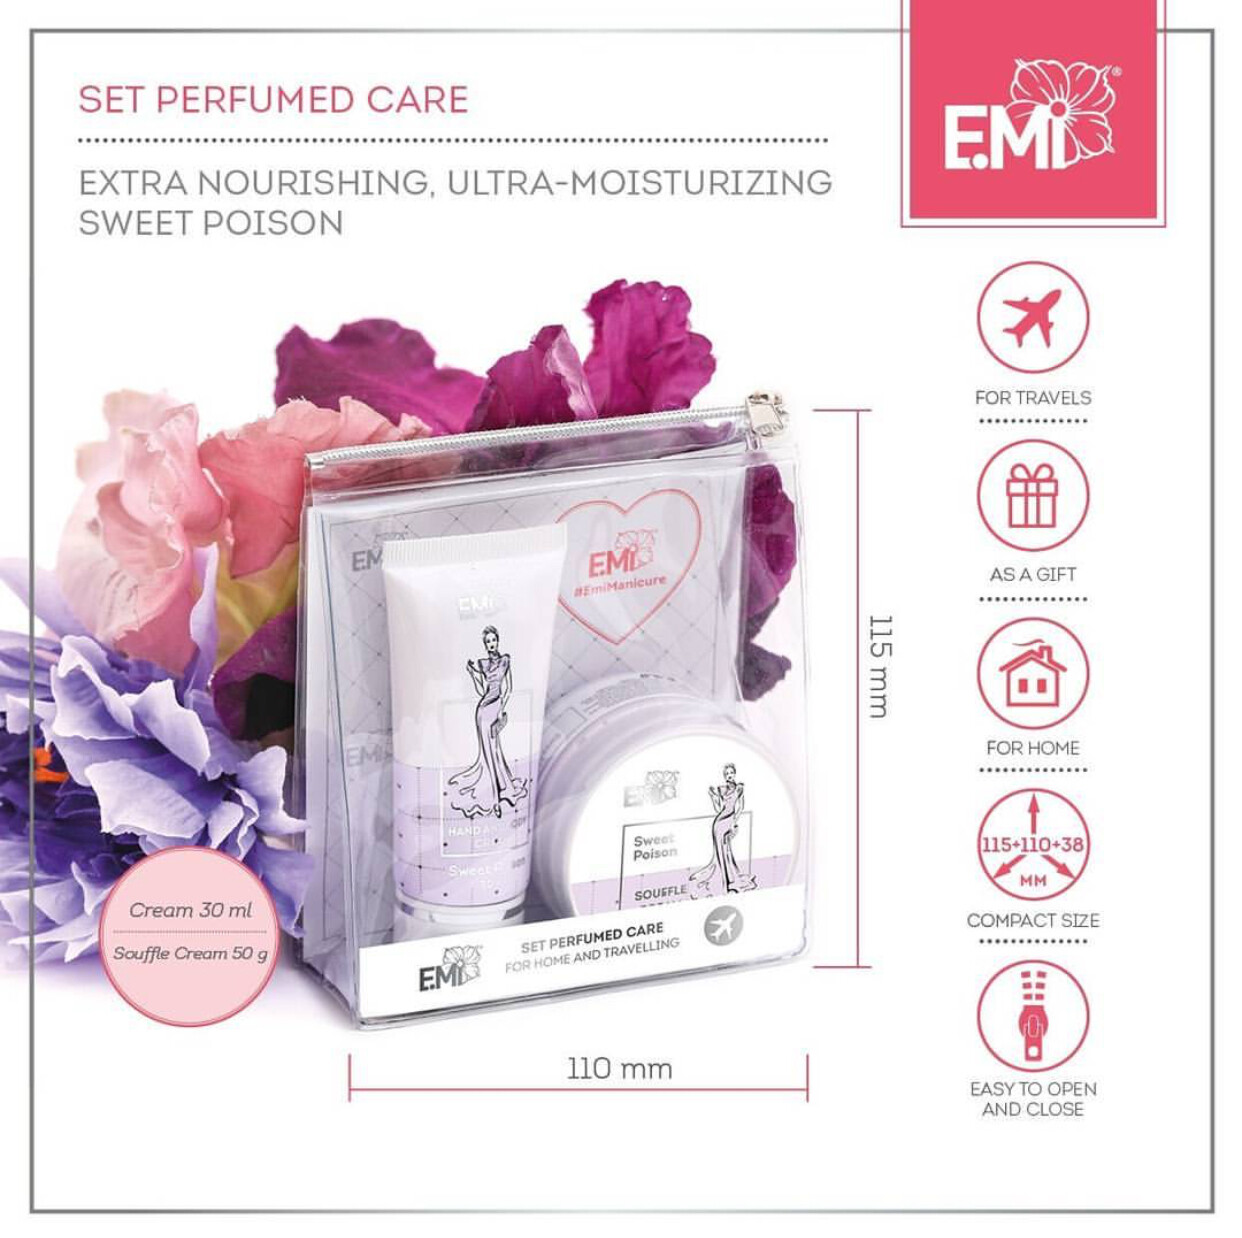 Set Perfumed Care. Extra-Nourishment and Ultra-Moisturizing Sweet Poison